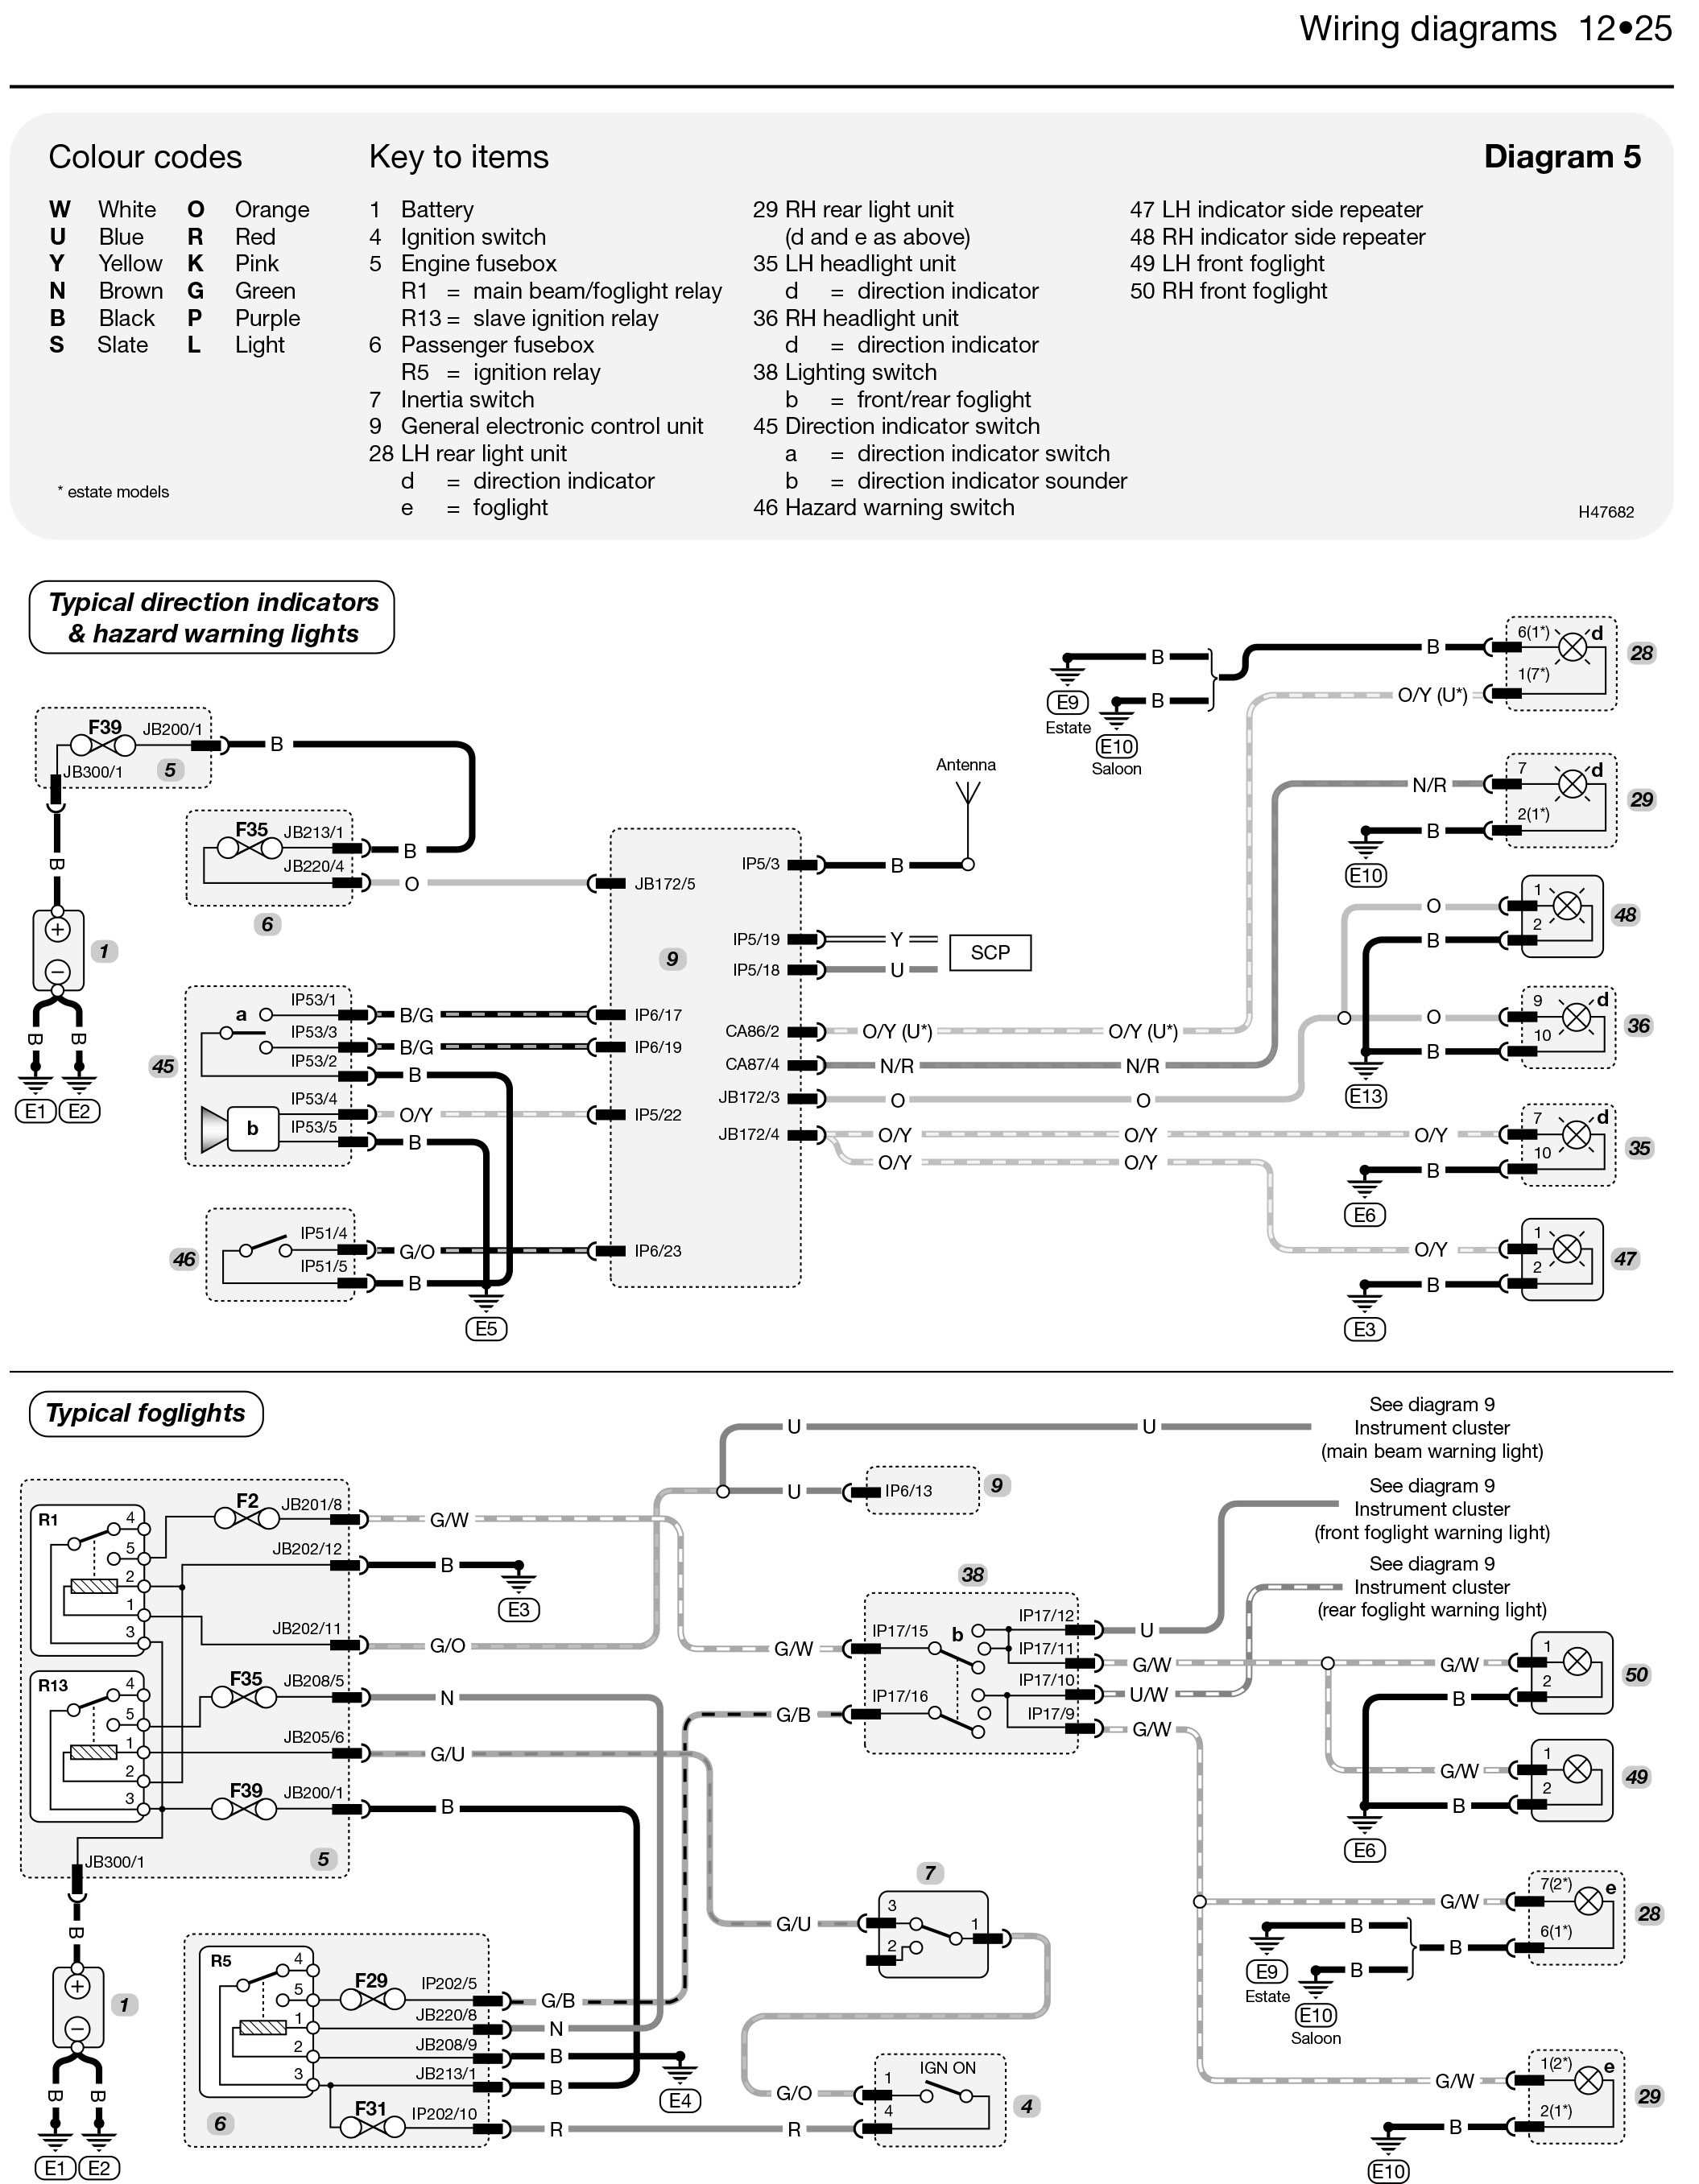 Jaguar S Type Wiring Diagram - Rj48x Wiring Diagram for Wiring Diagram  SchematicsWiring Diagram Schematics